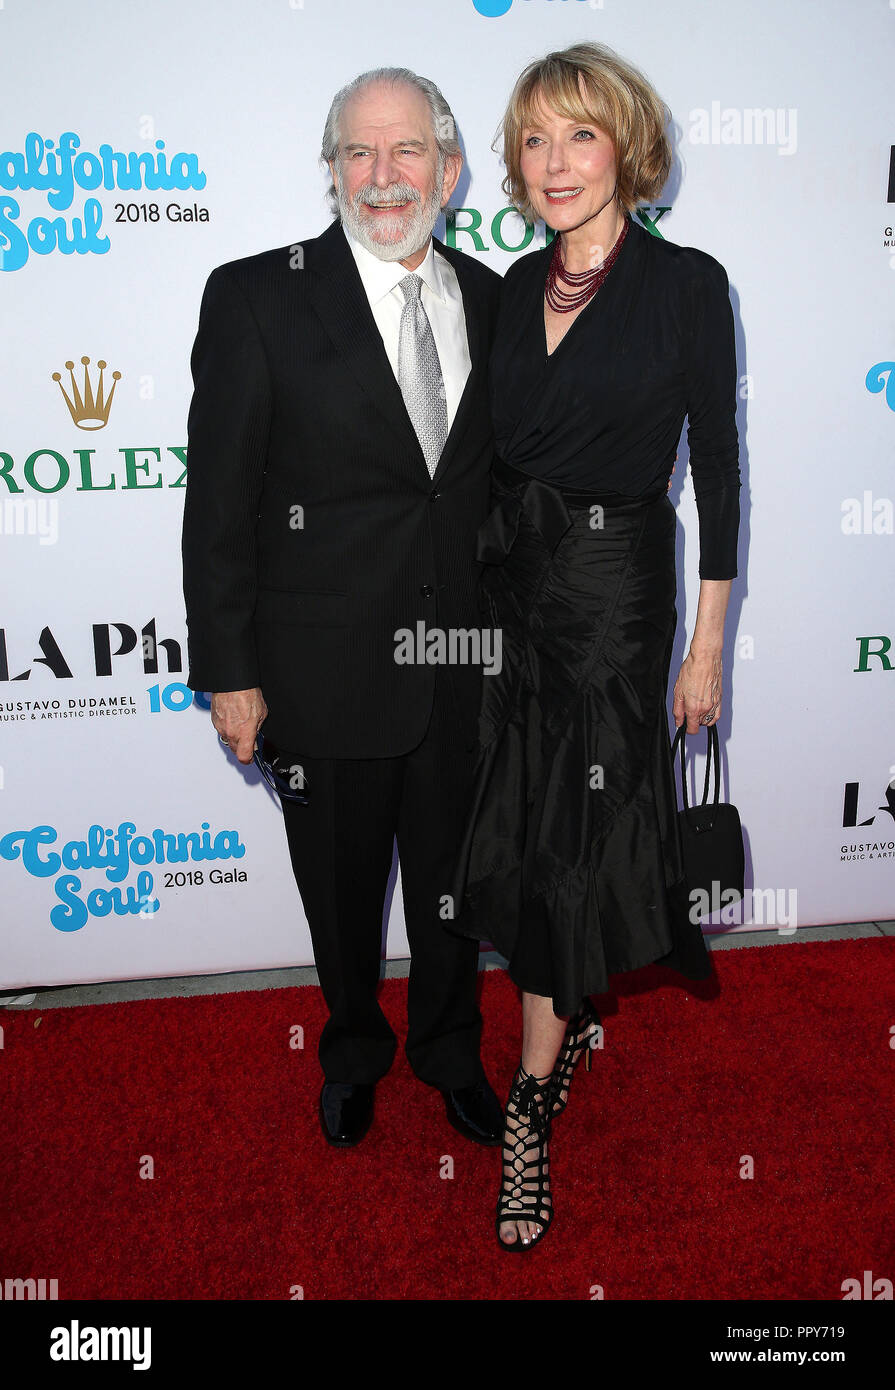 Los Angeles, California, USA. 27th Sep, 2018. 27 September 2018 - Los Angles, California - Steve Jaffe, Susan Blakely. 100th LA Philharmonic Opening Night Gala held at The Walt Disney Concert Hall. Photo Credit: Faye Sadou/AdMedia Credit: Faye Sadou/AdMedia/ZUMA Wire/Alamy Live News Stock Photo